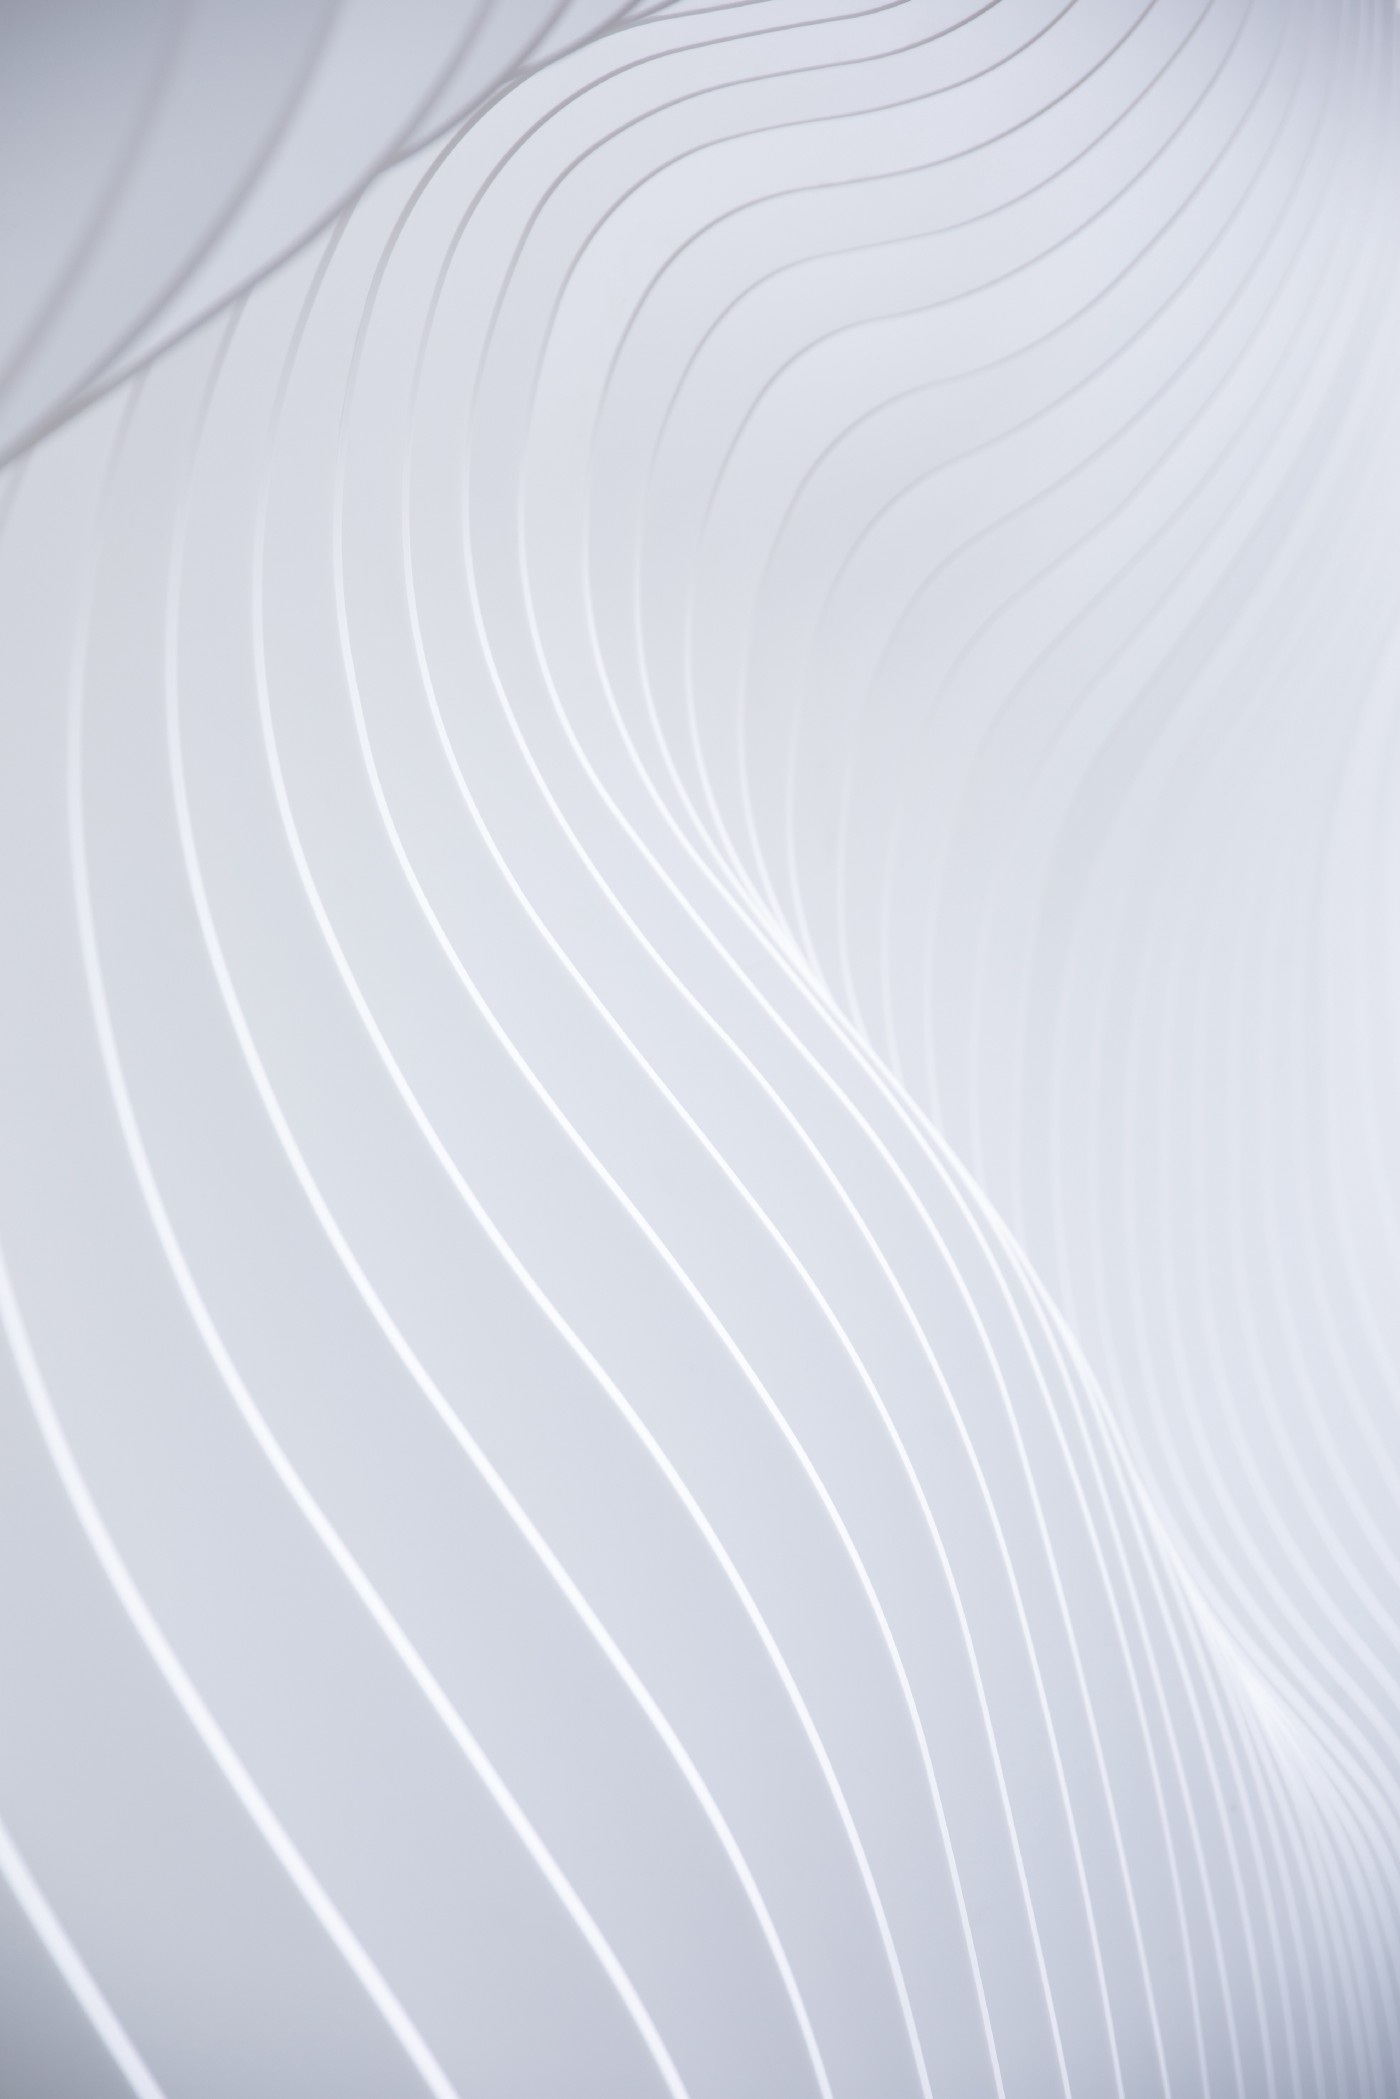 """Curved architectural white lines in textual layers as a visual metaphor to """"dynamic""""."""